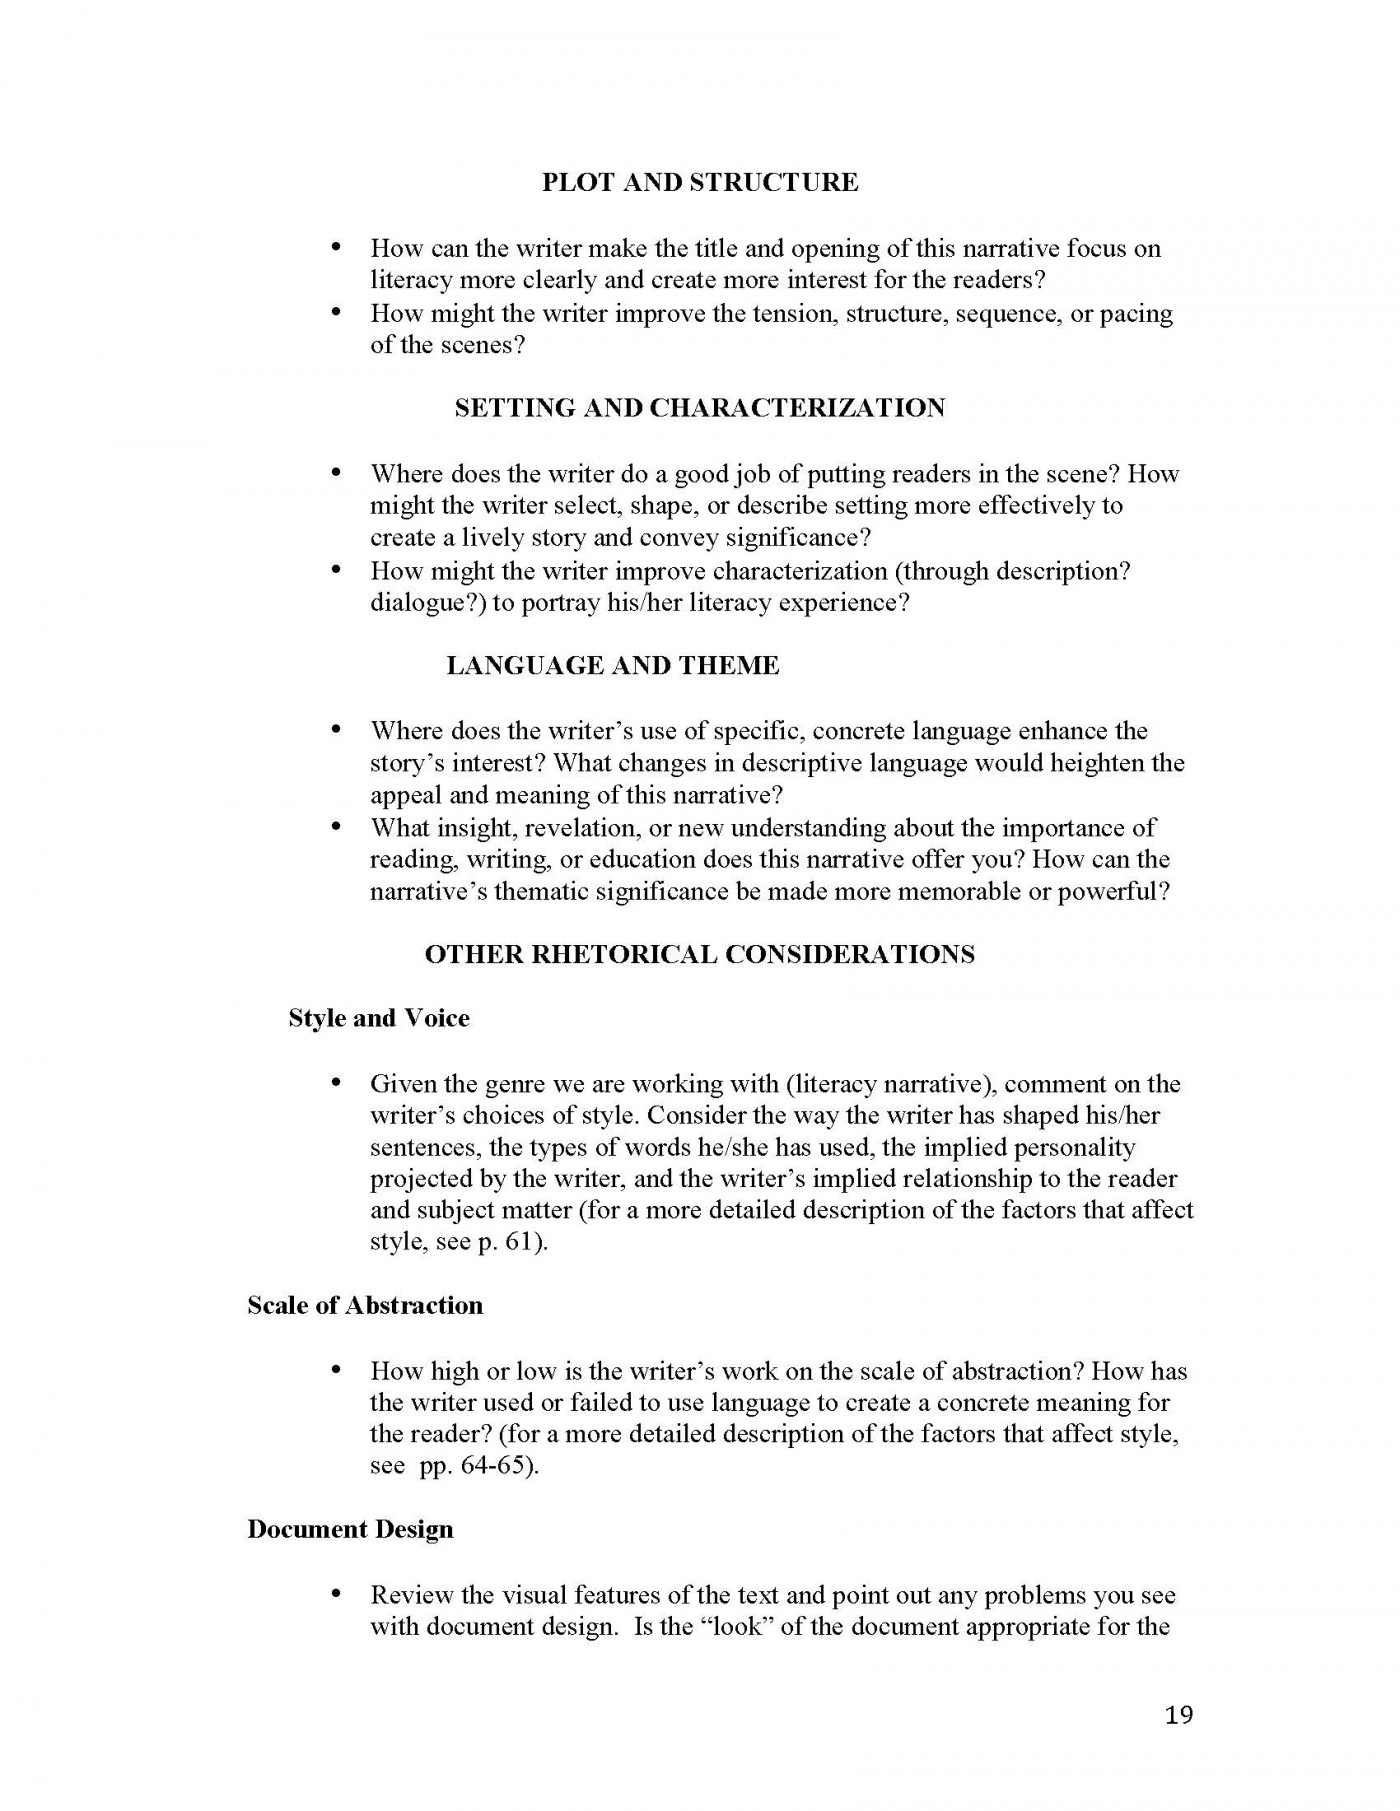 010 Unit 1 Literacy Narrative Instructor Copy Page 19 Immigration Essay Exceptional Conclusion Topics 1400